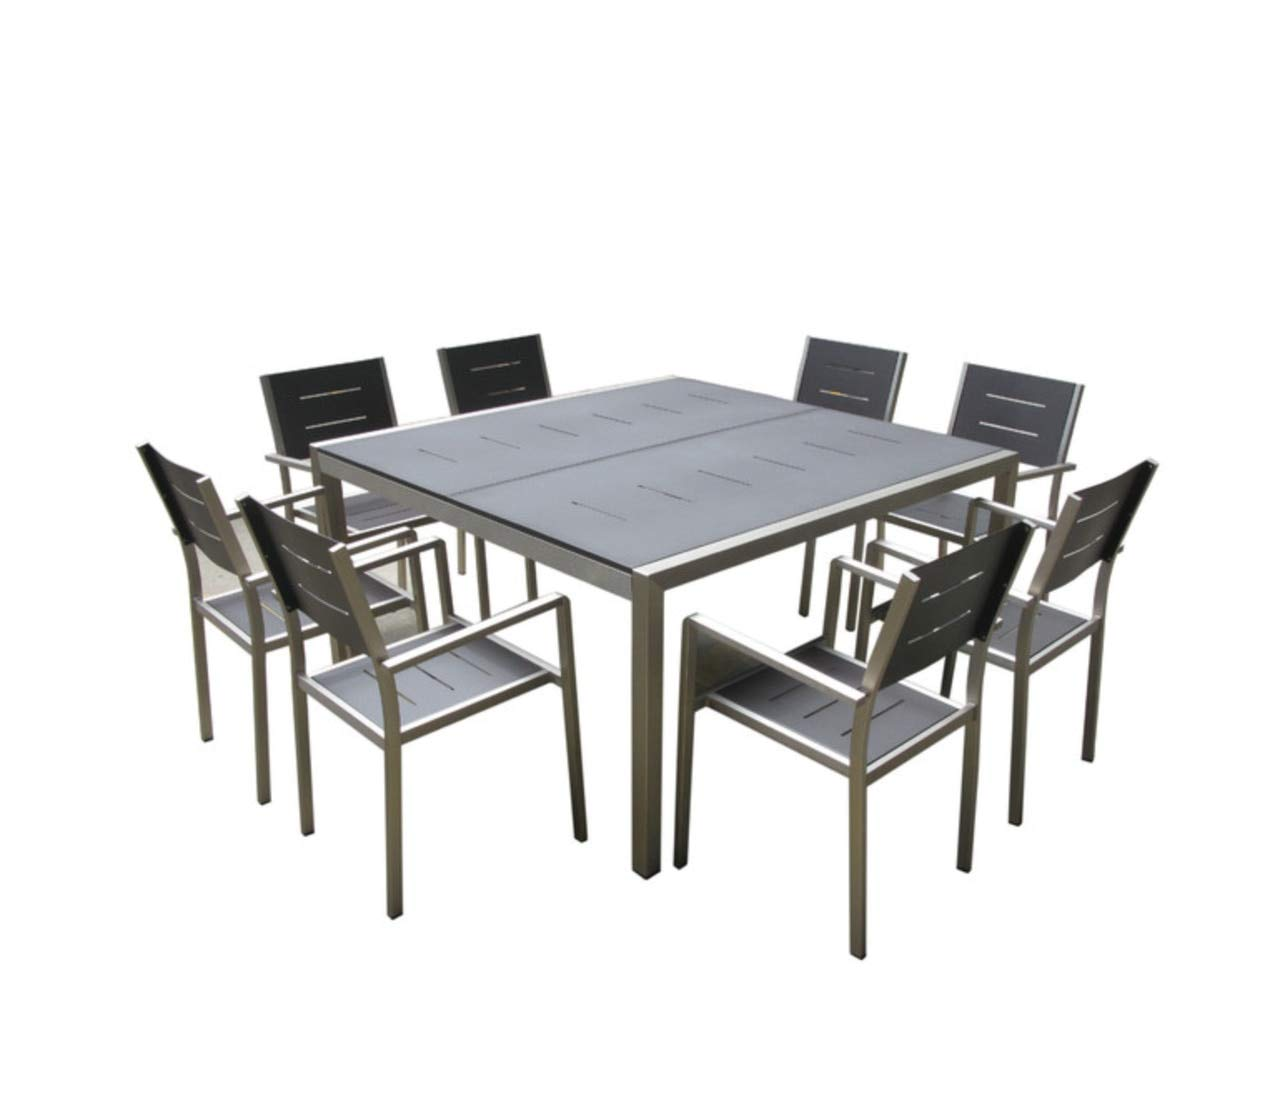 Mango Home 9-Piece Aluminum Resin Outdoor Patio Wicker Square Dining Table and Chairs Set